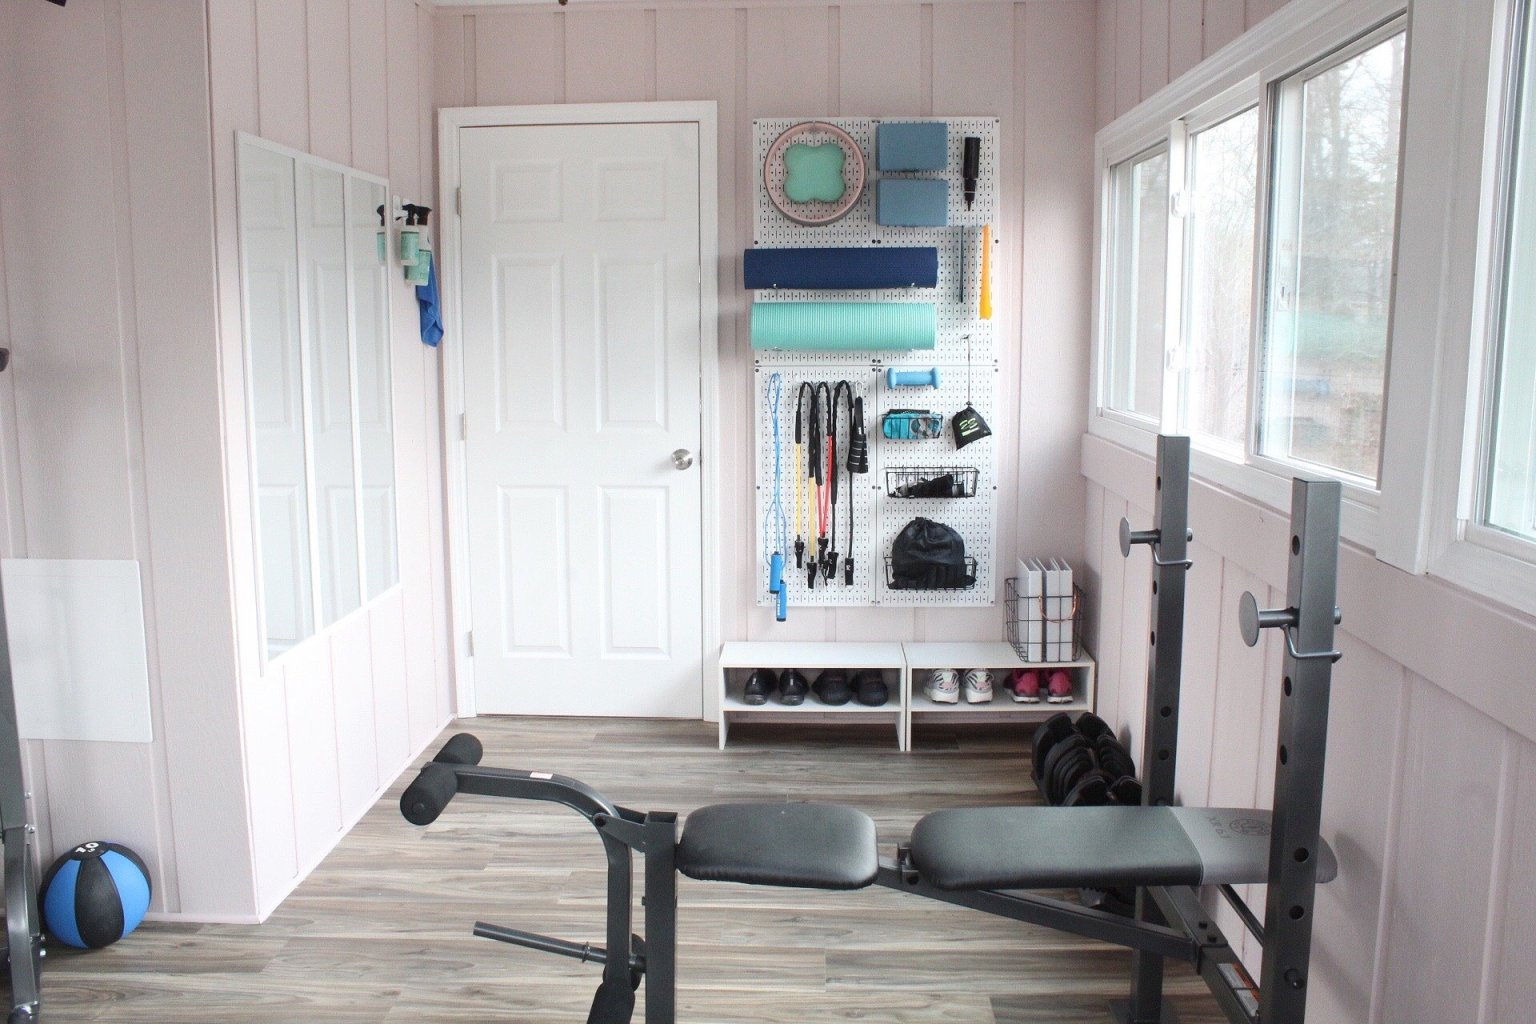 workout room with wall organizer pegboard for small workout equipment